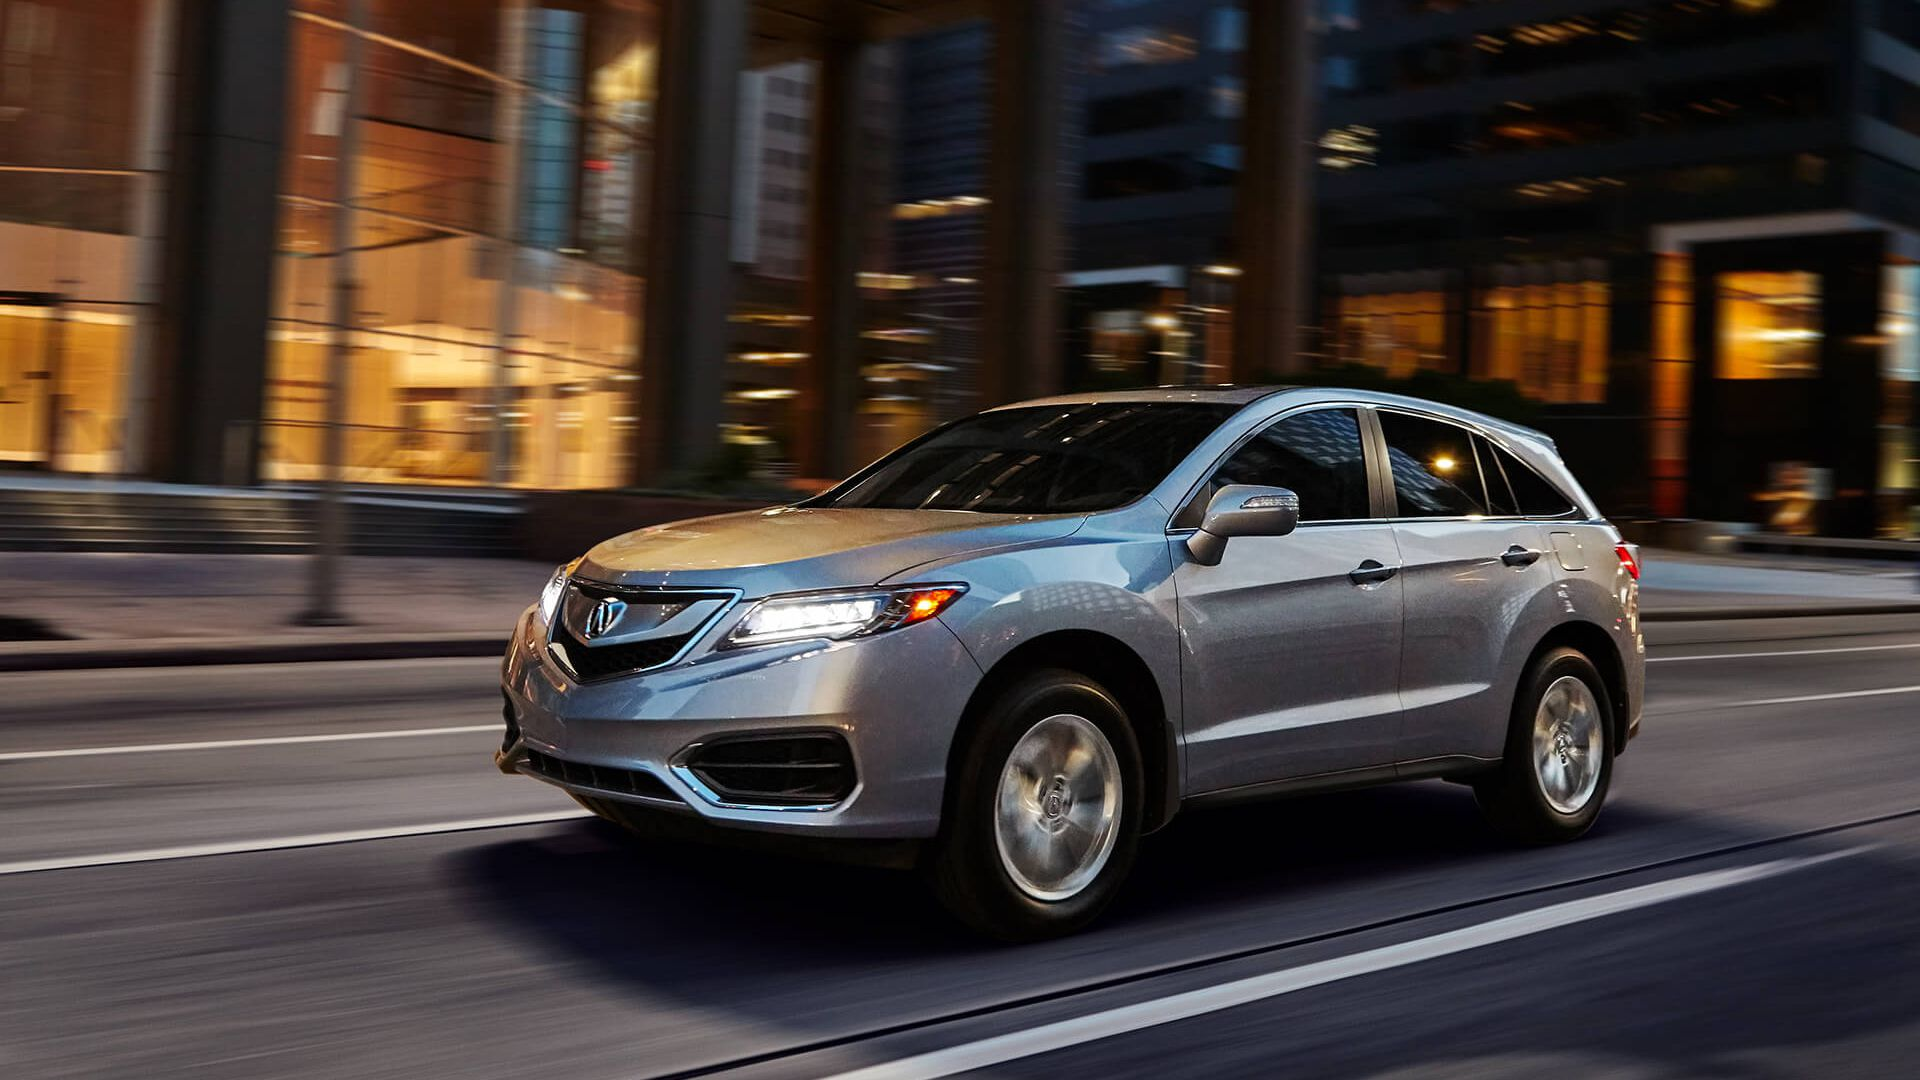 5acd722a60 The best lease deals on luxury SUVs - The Globe and Mail